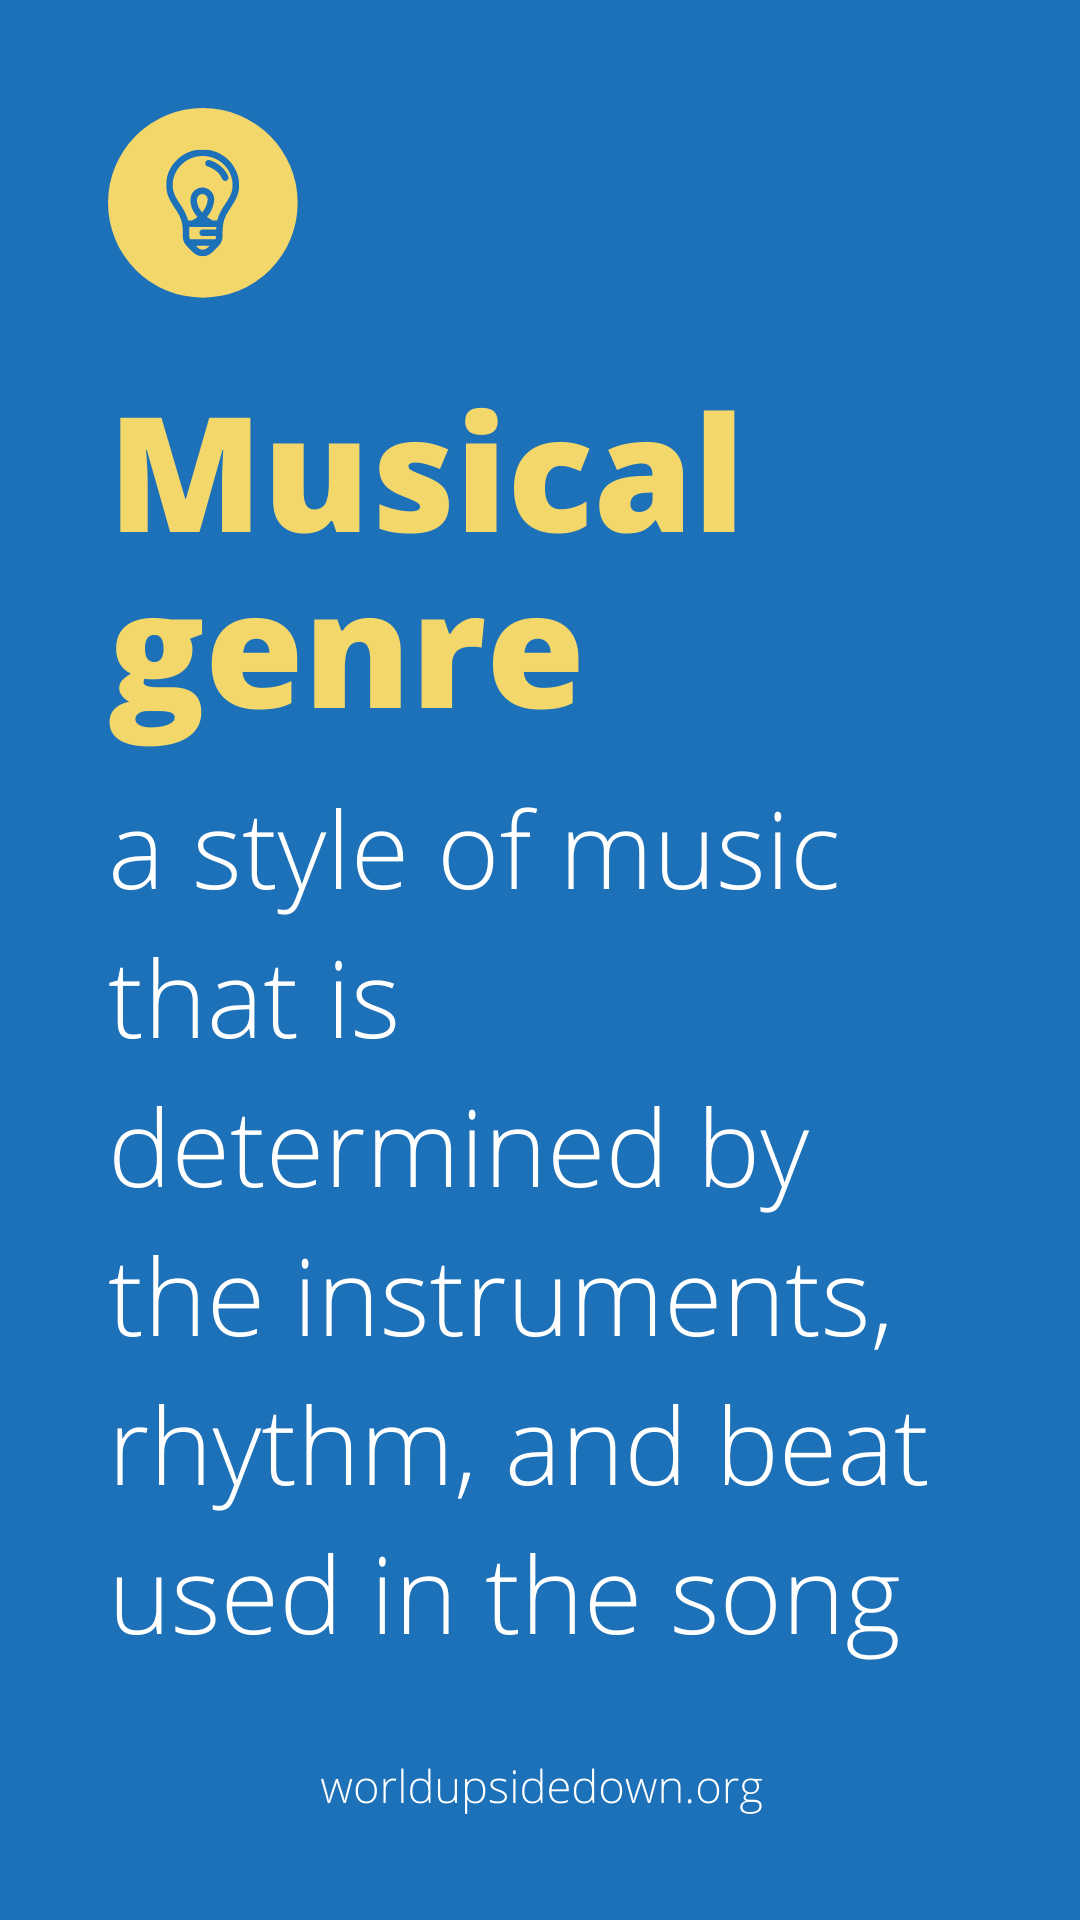 definition of musical genre for music activities for Hispanic Heritage Month